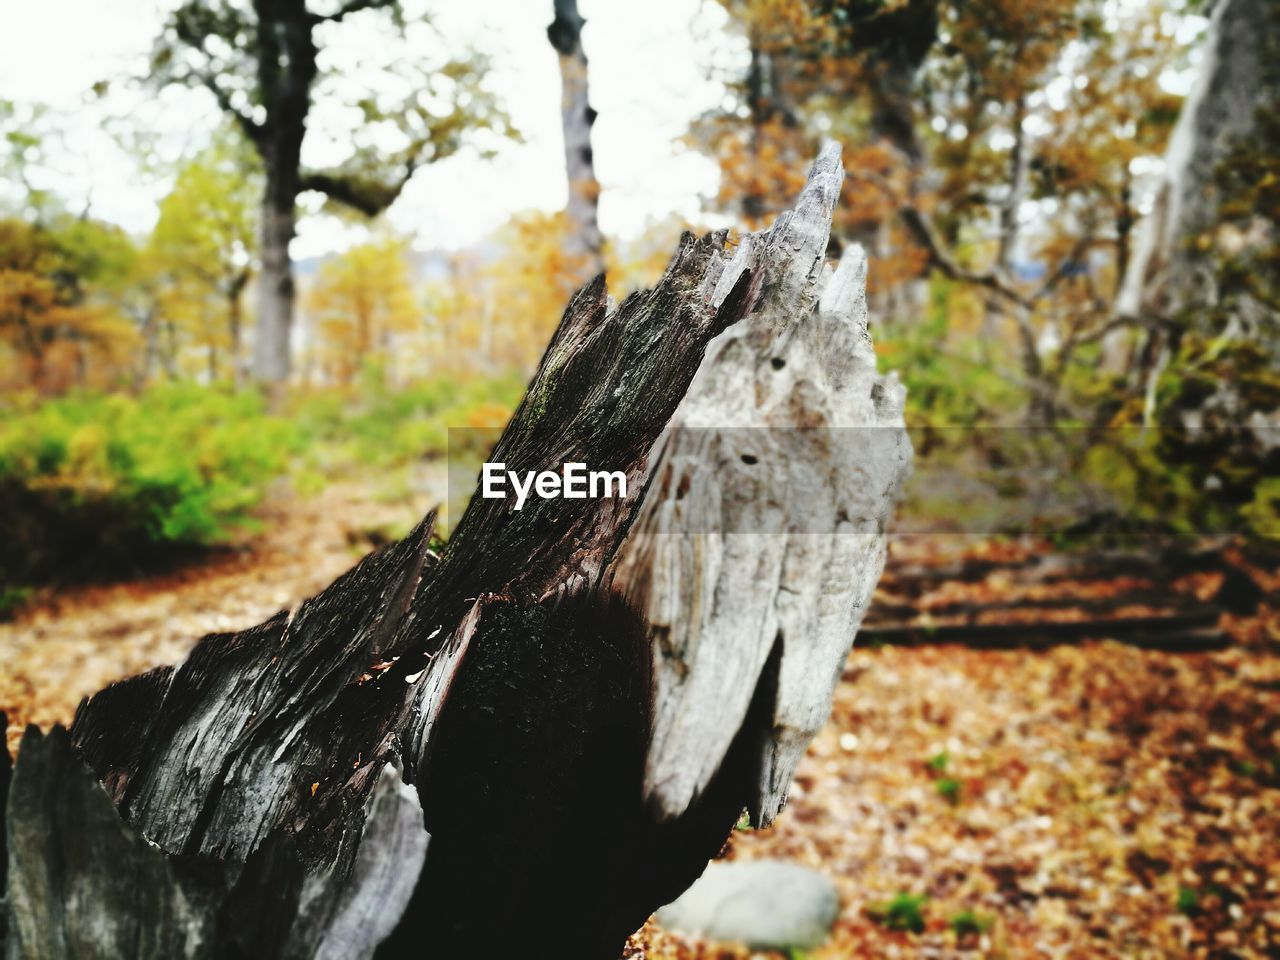 tree, tree trunk, nature, focus on foreground, deforestation, day, log, tree stump, outdoors, wood - material, no people, close-up, leaf, branch, beauty in nature, dead tree